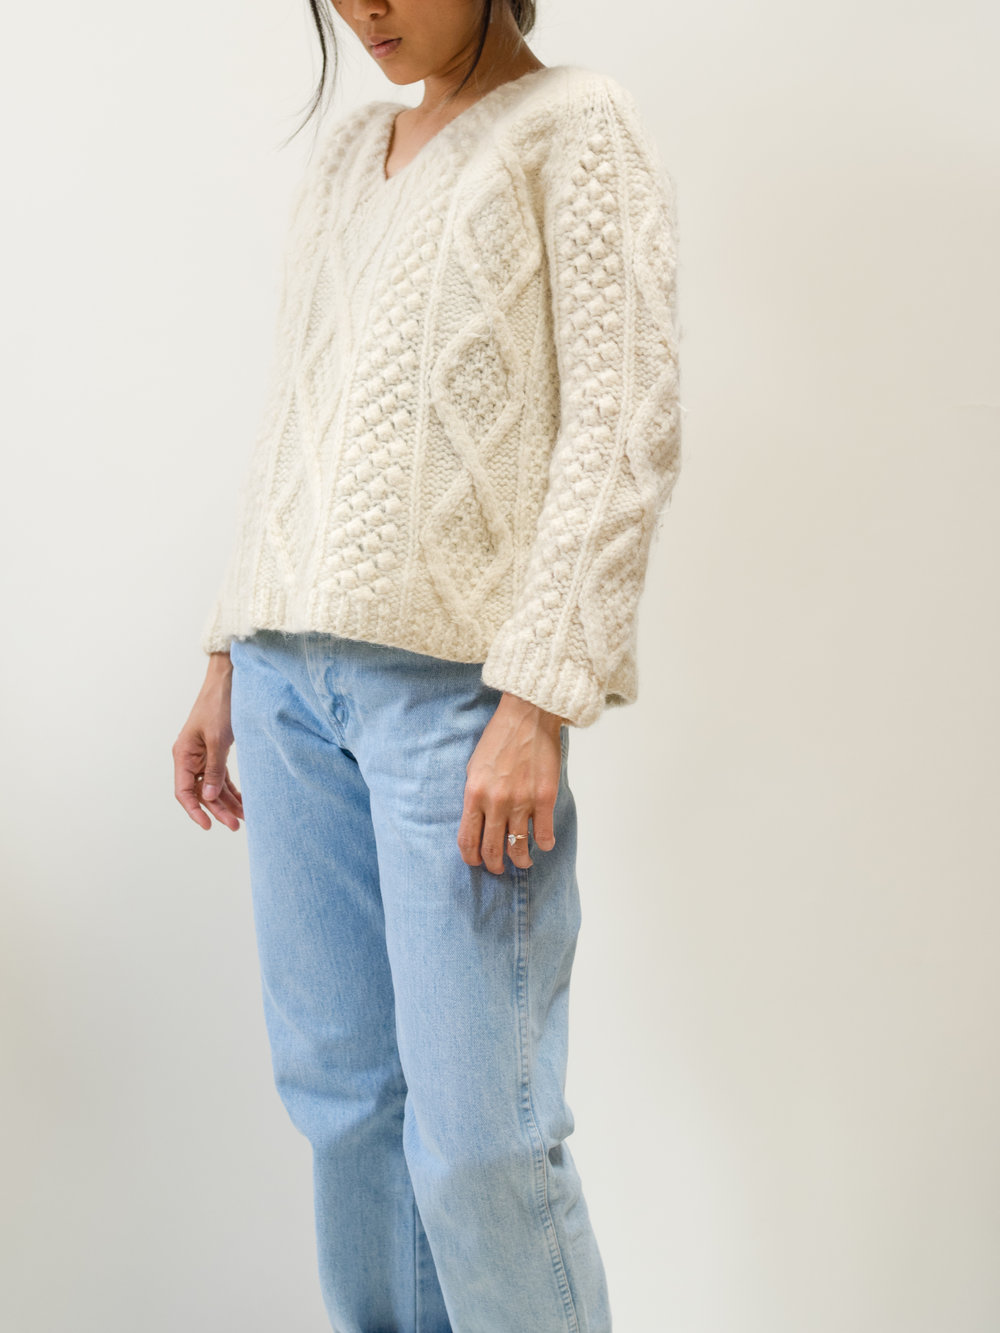 Cream Italian Wool Sweater Size XS $40